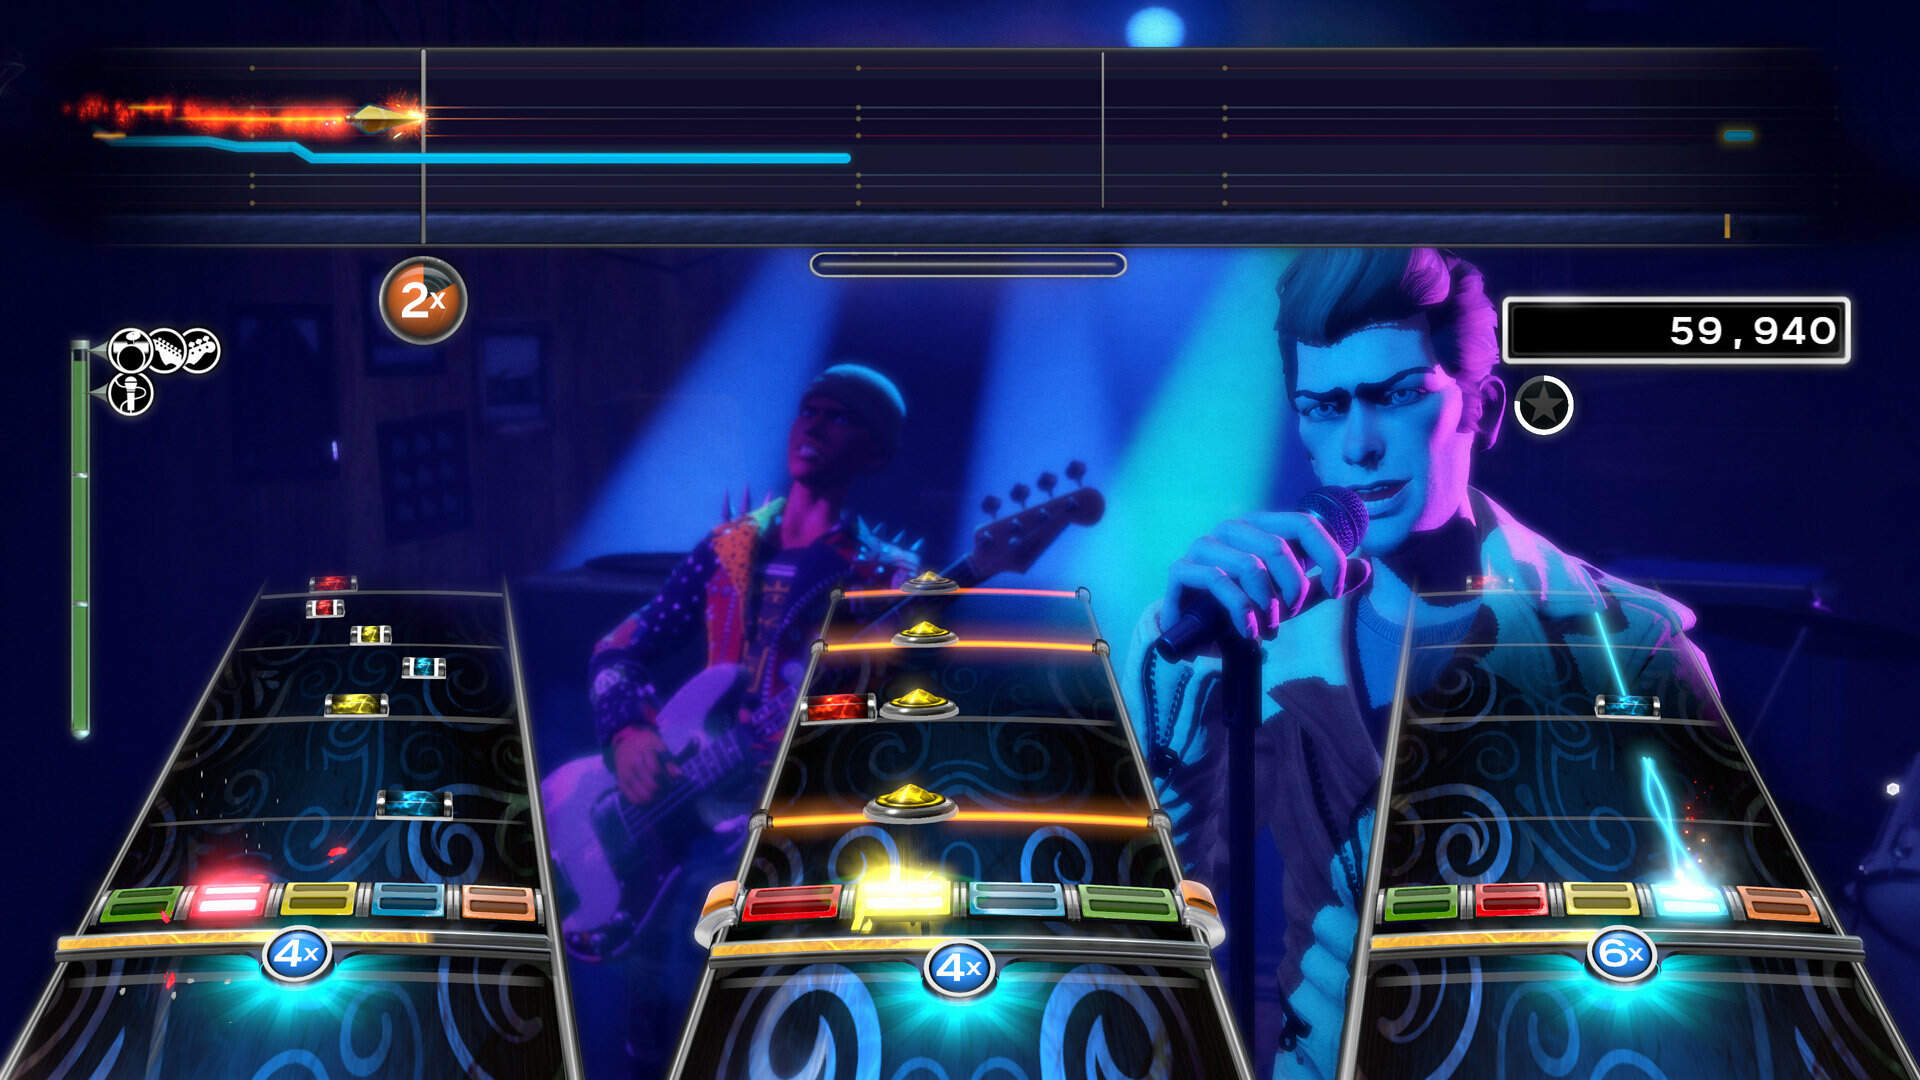 Rock Band 4 Will Have a Pretty Smooth Transition to Next-Gen